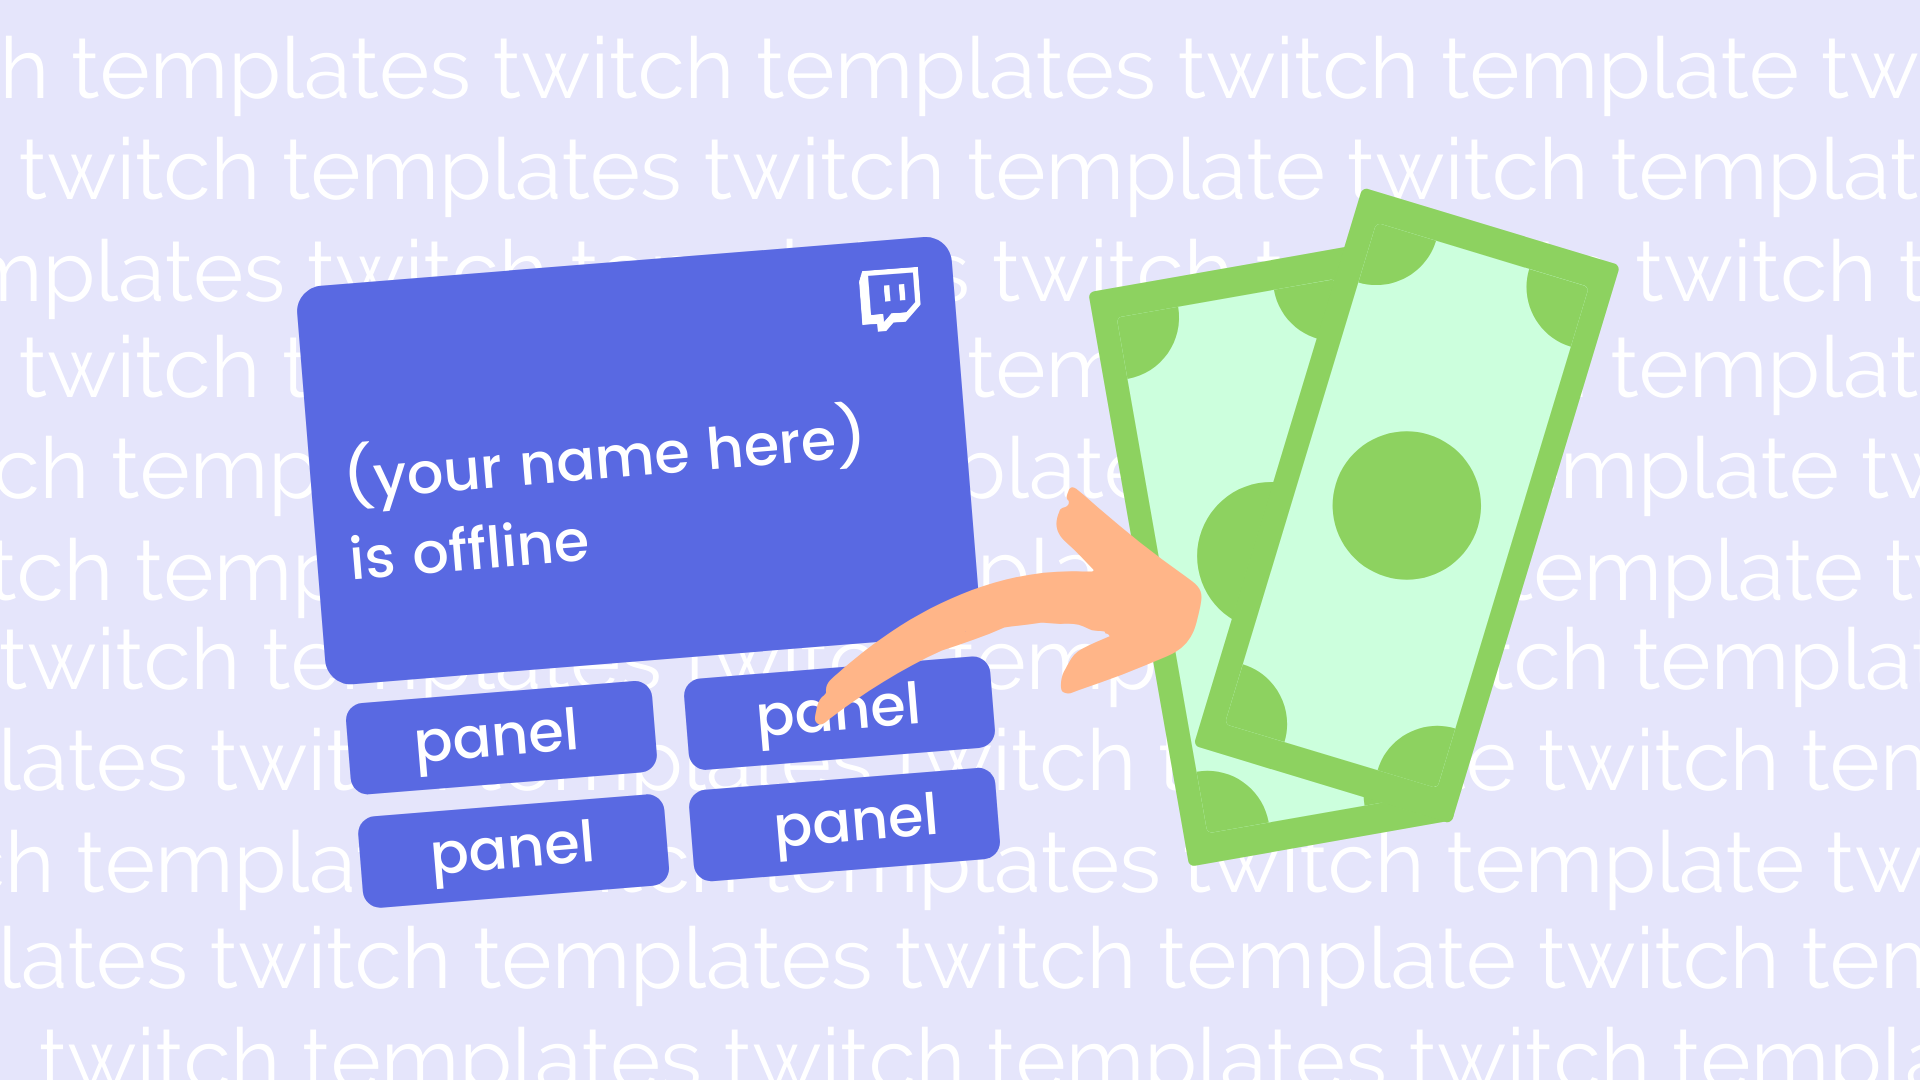 How to Make Money From Twitch Templates - Start Selling Today